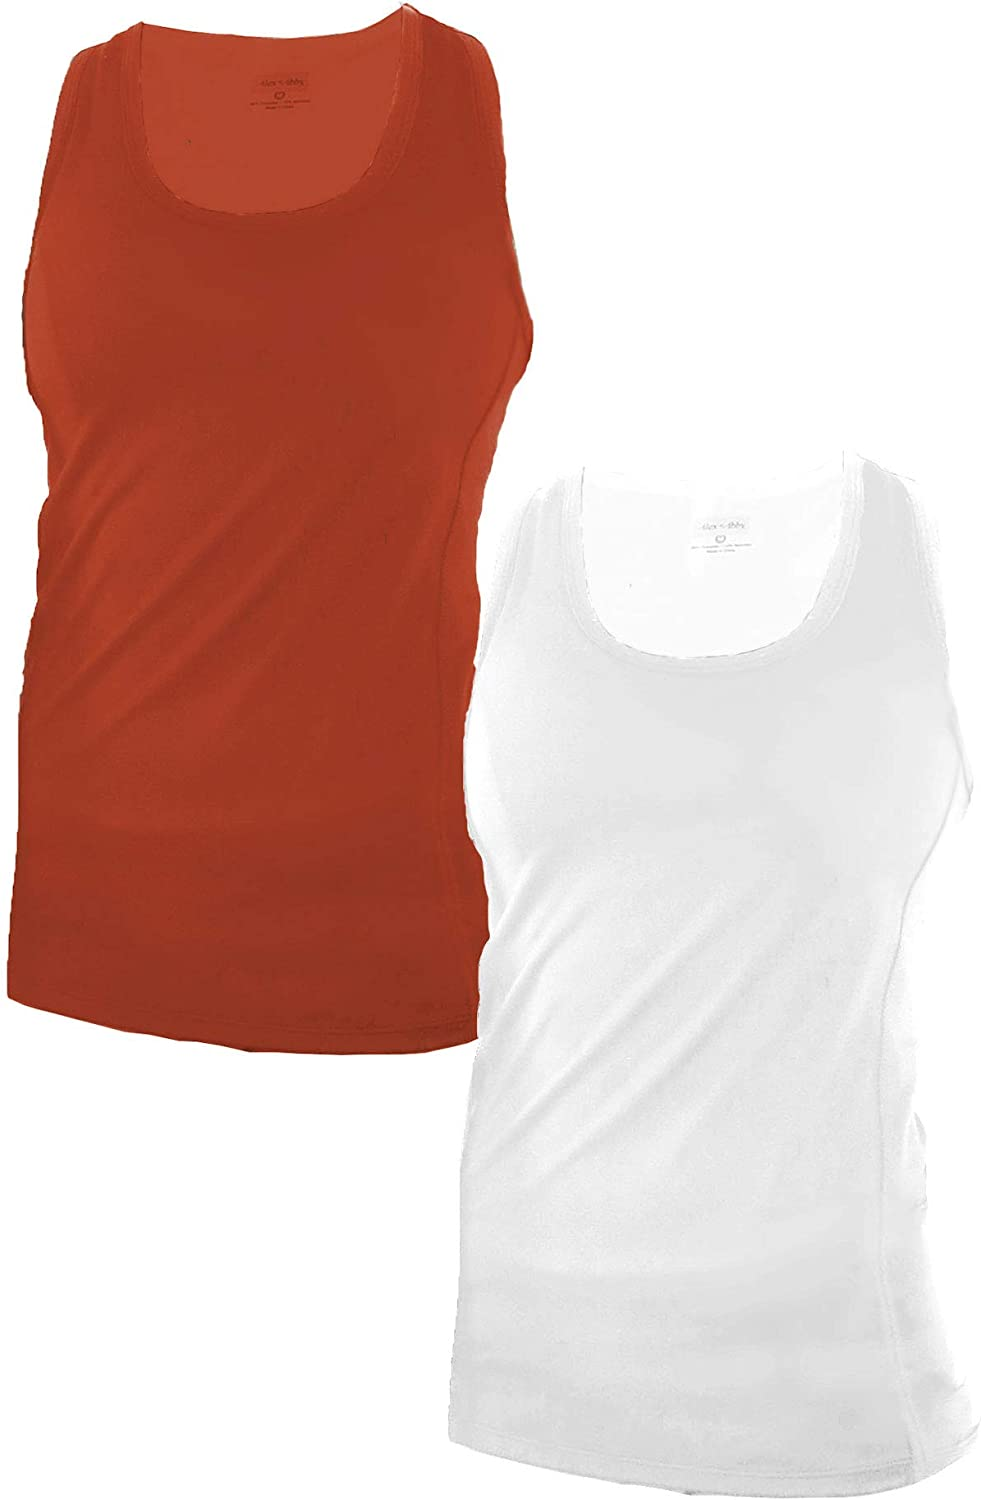 Abby Womens 2-Pack Energy Tank-Top Alex